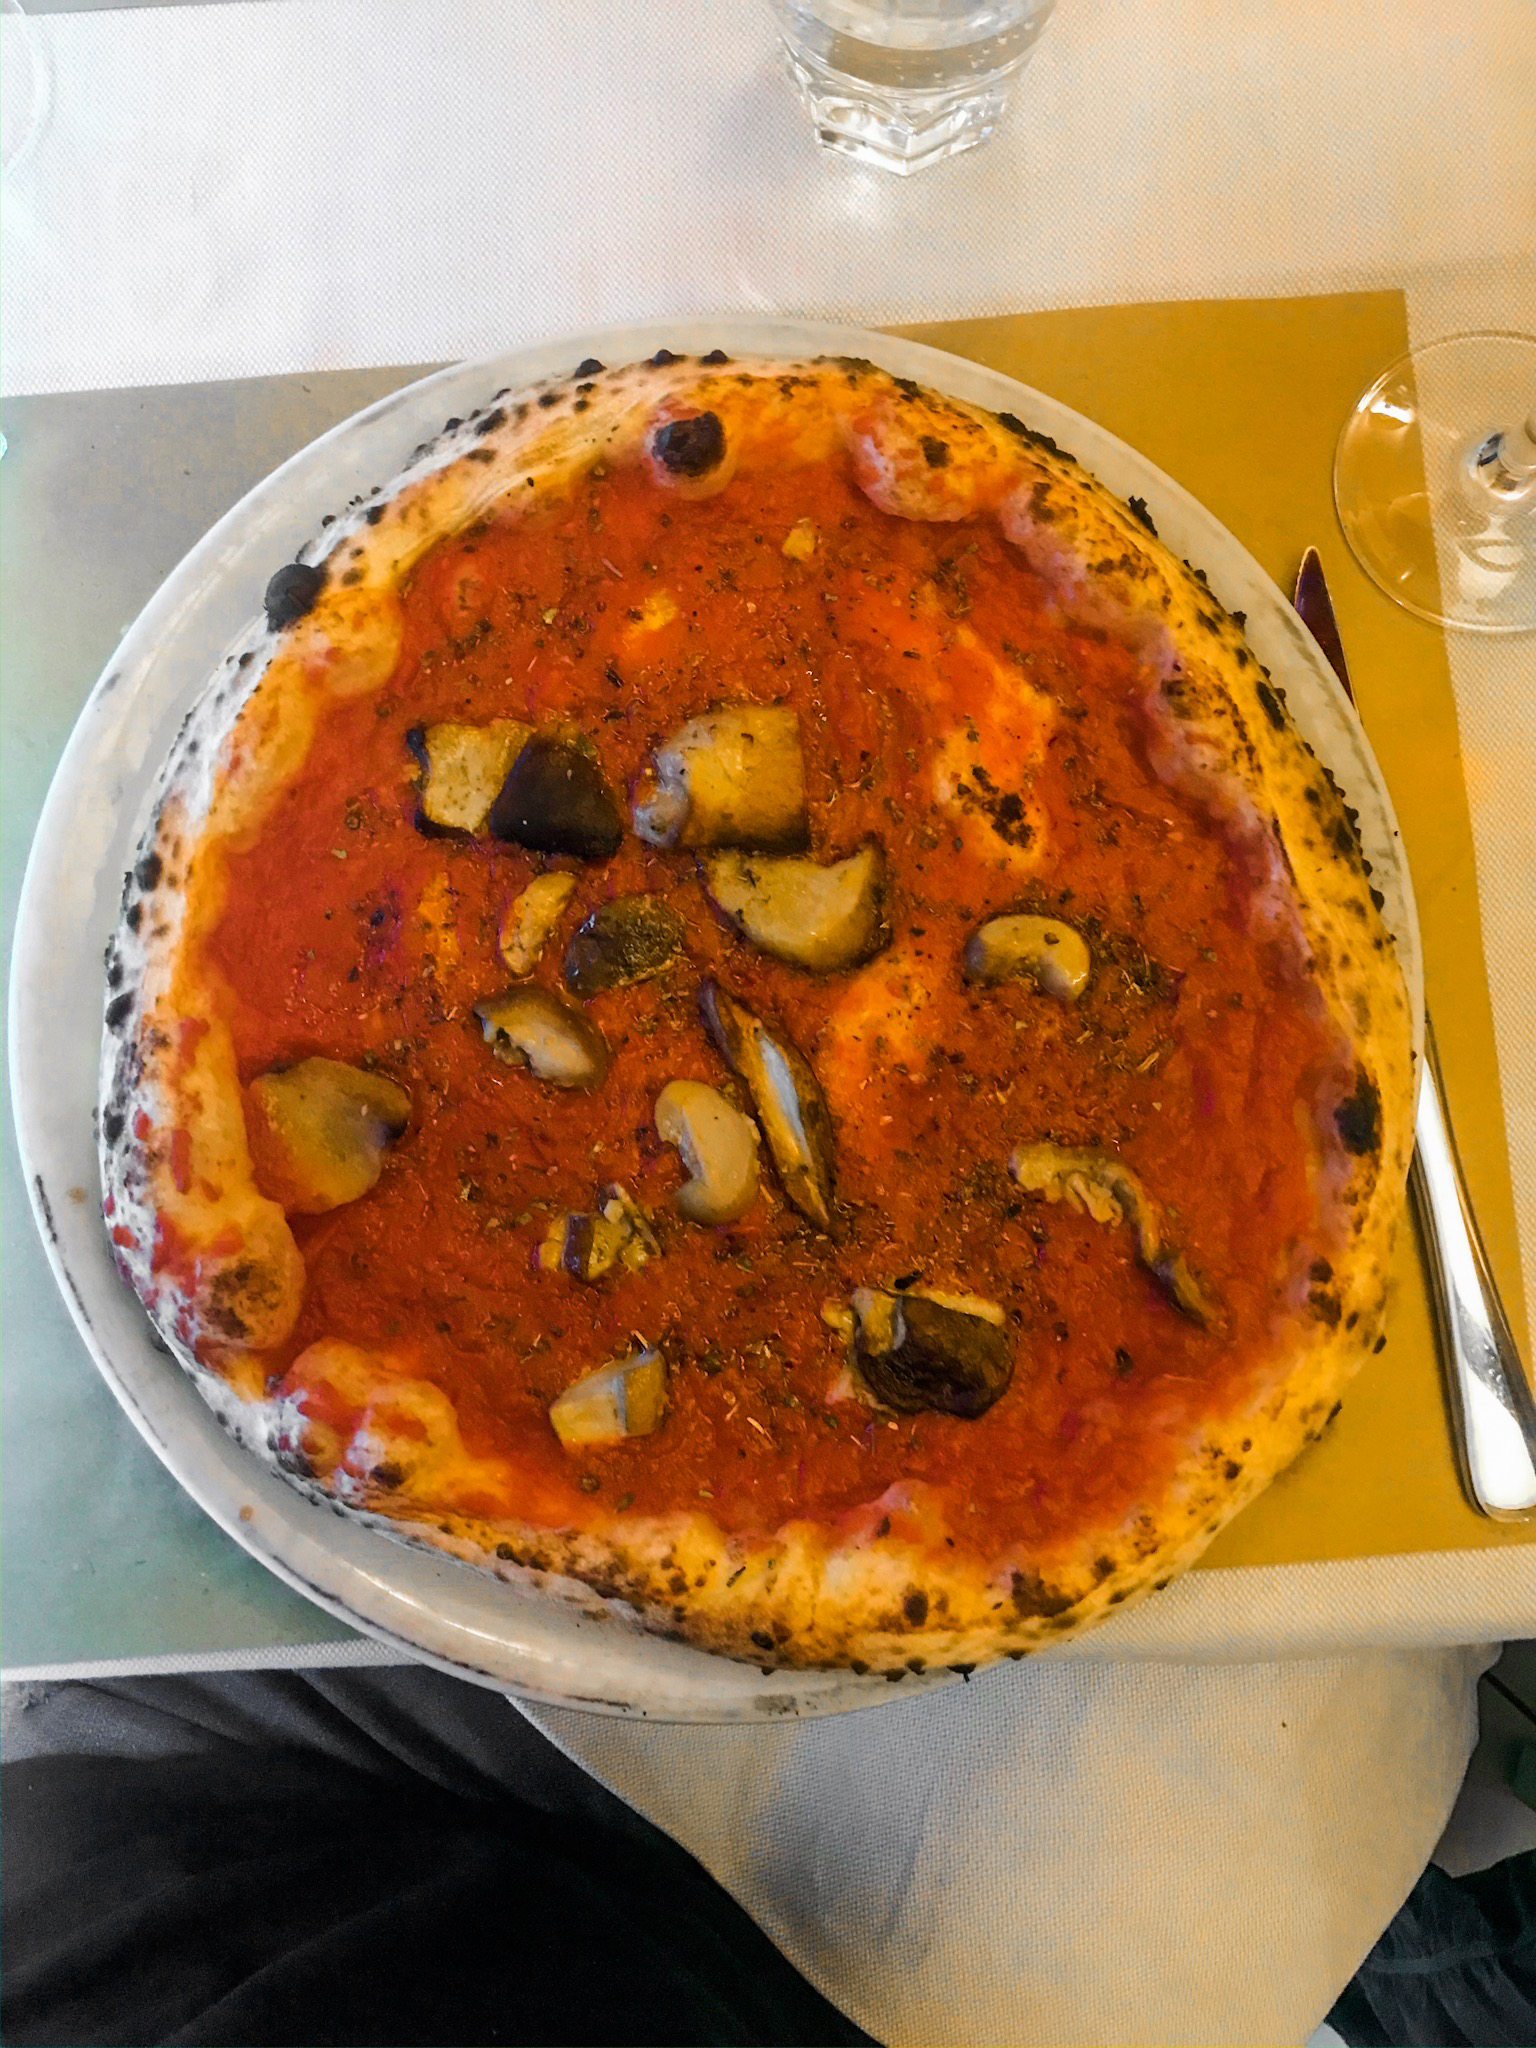 Del Forno Alla Soffitta marinara pizza with mushrooms